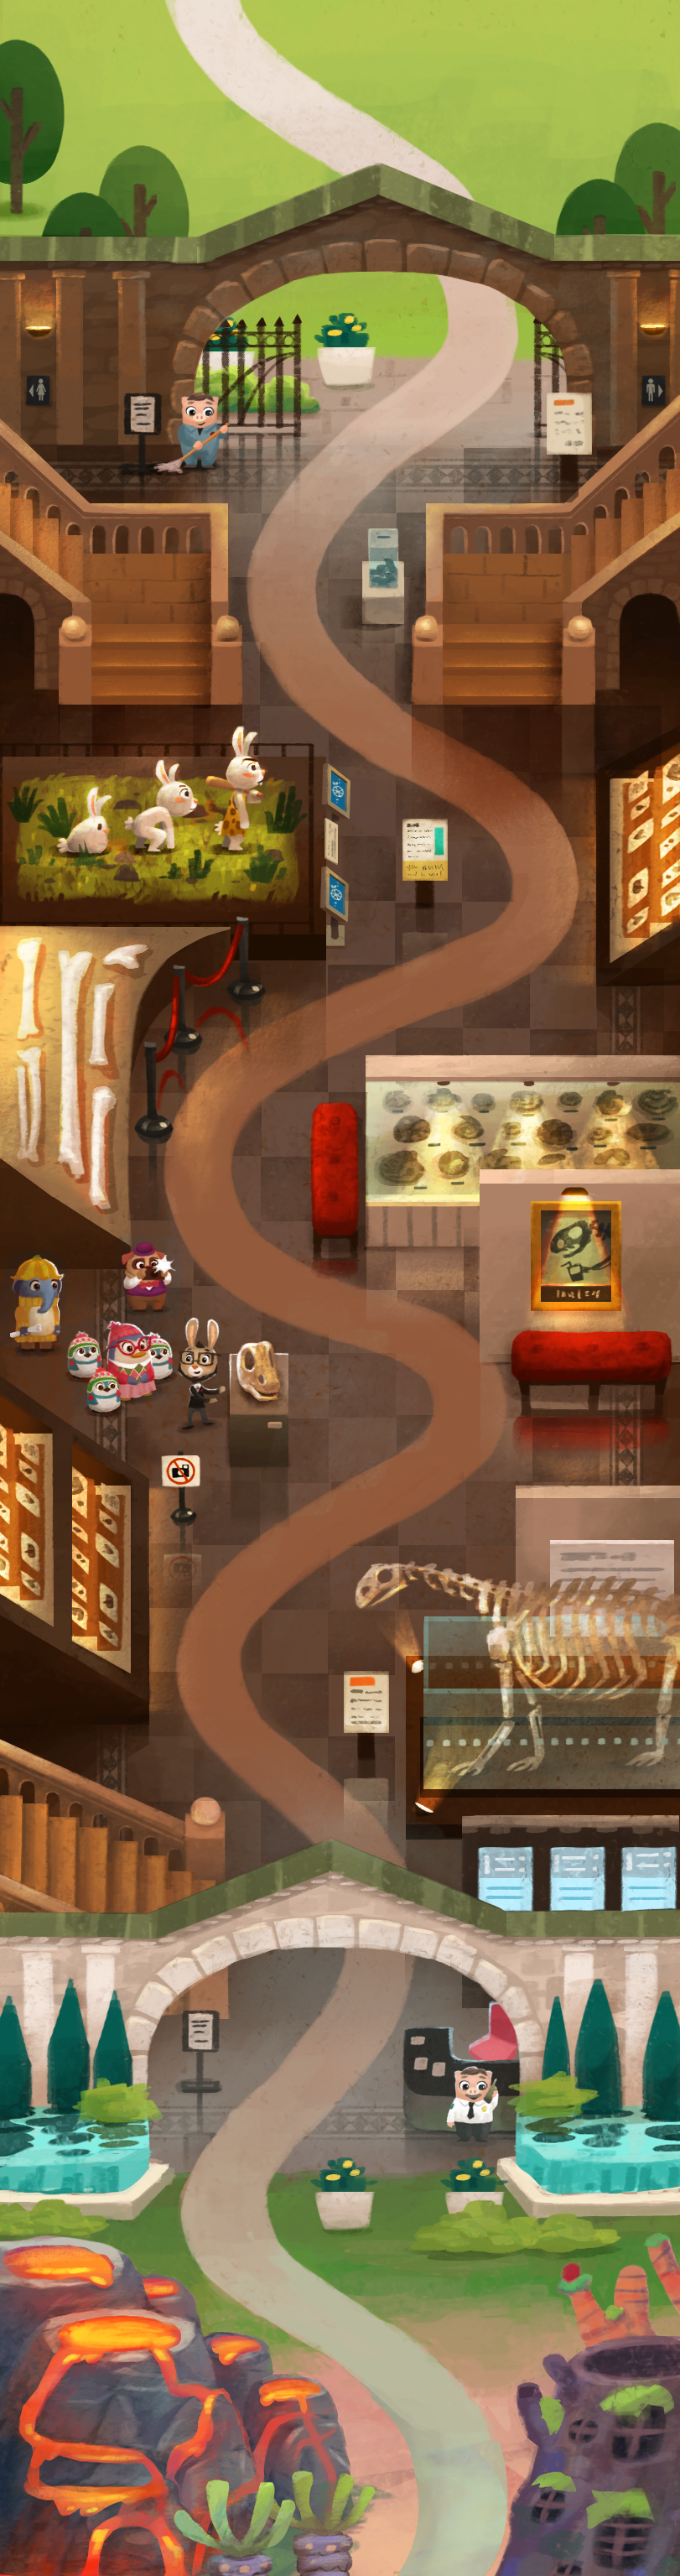 museum map.png